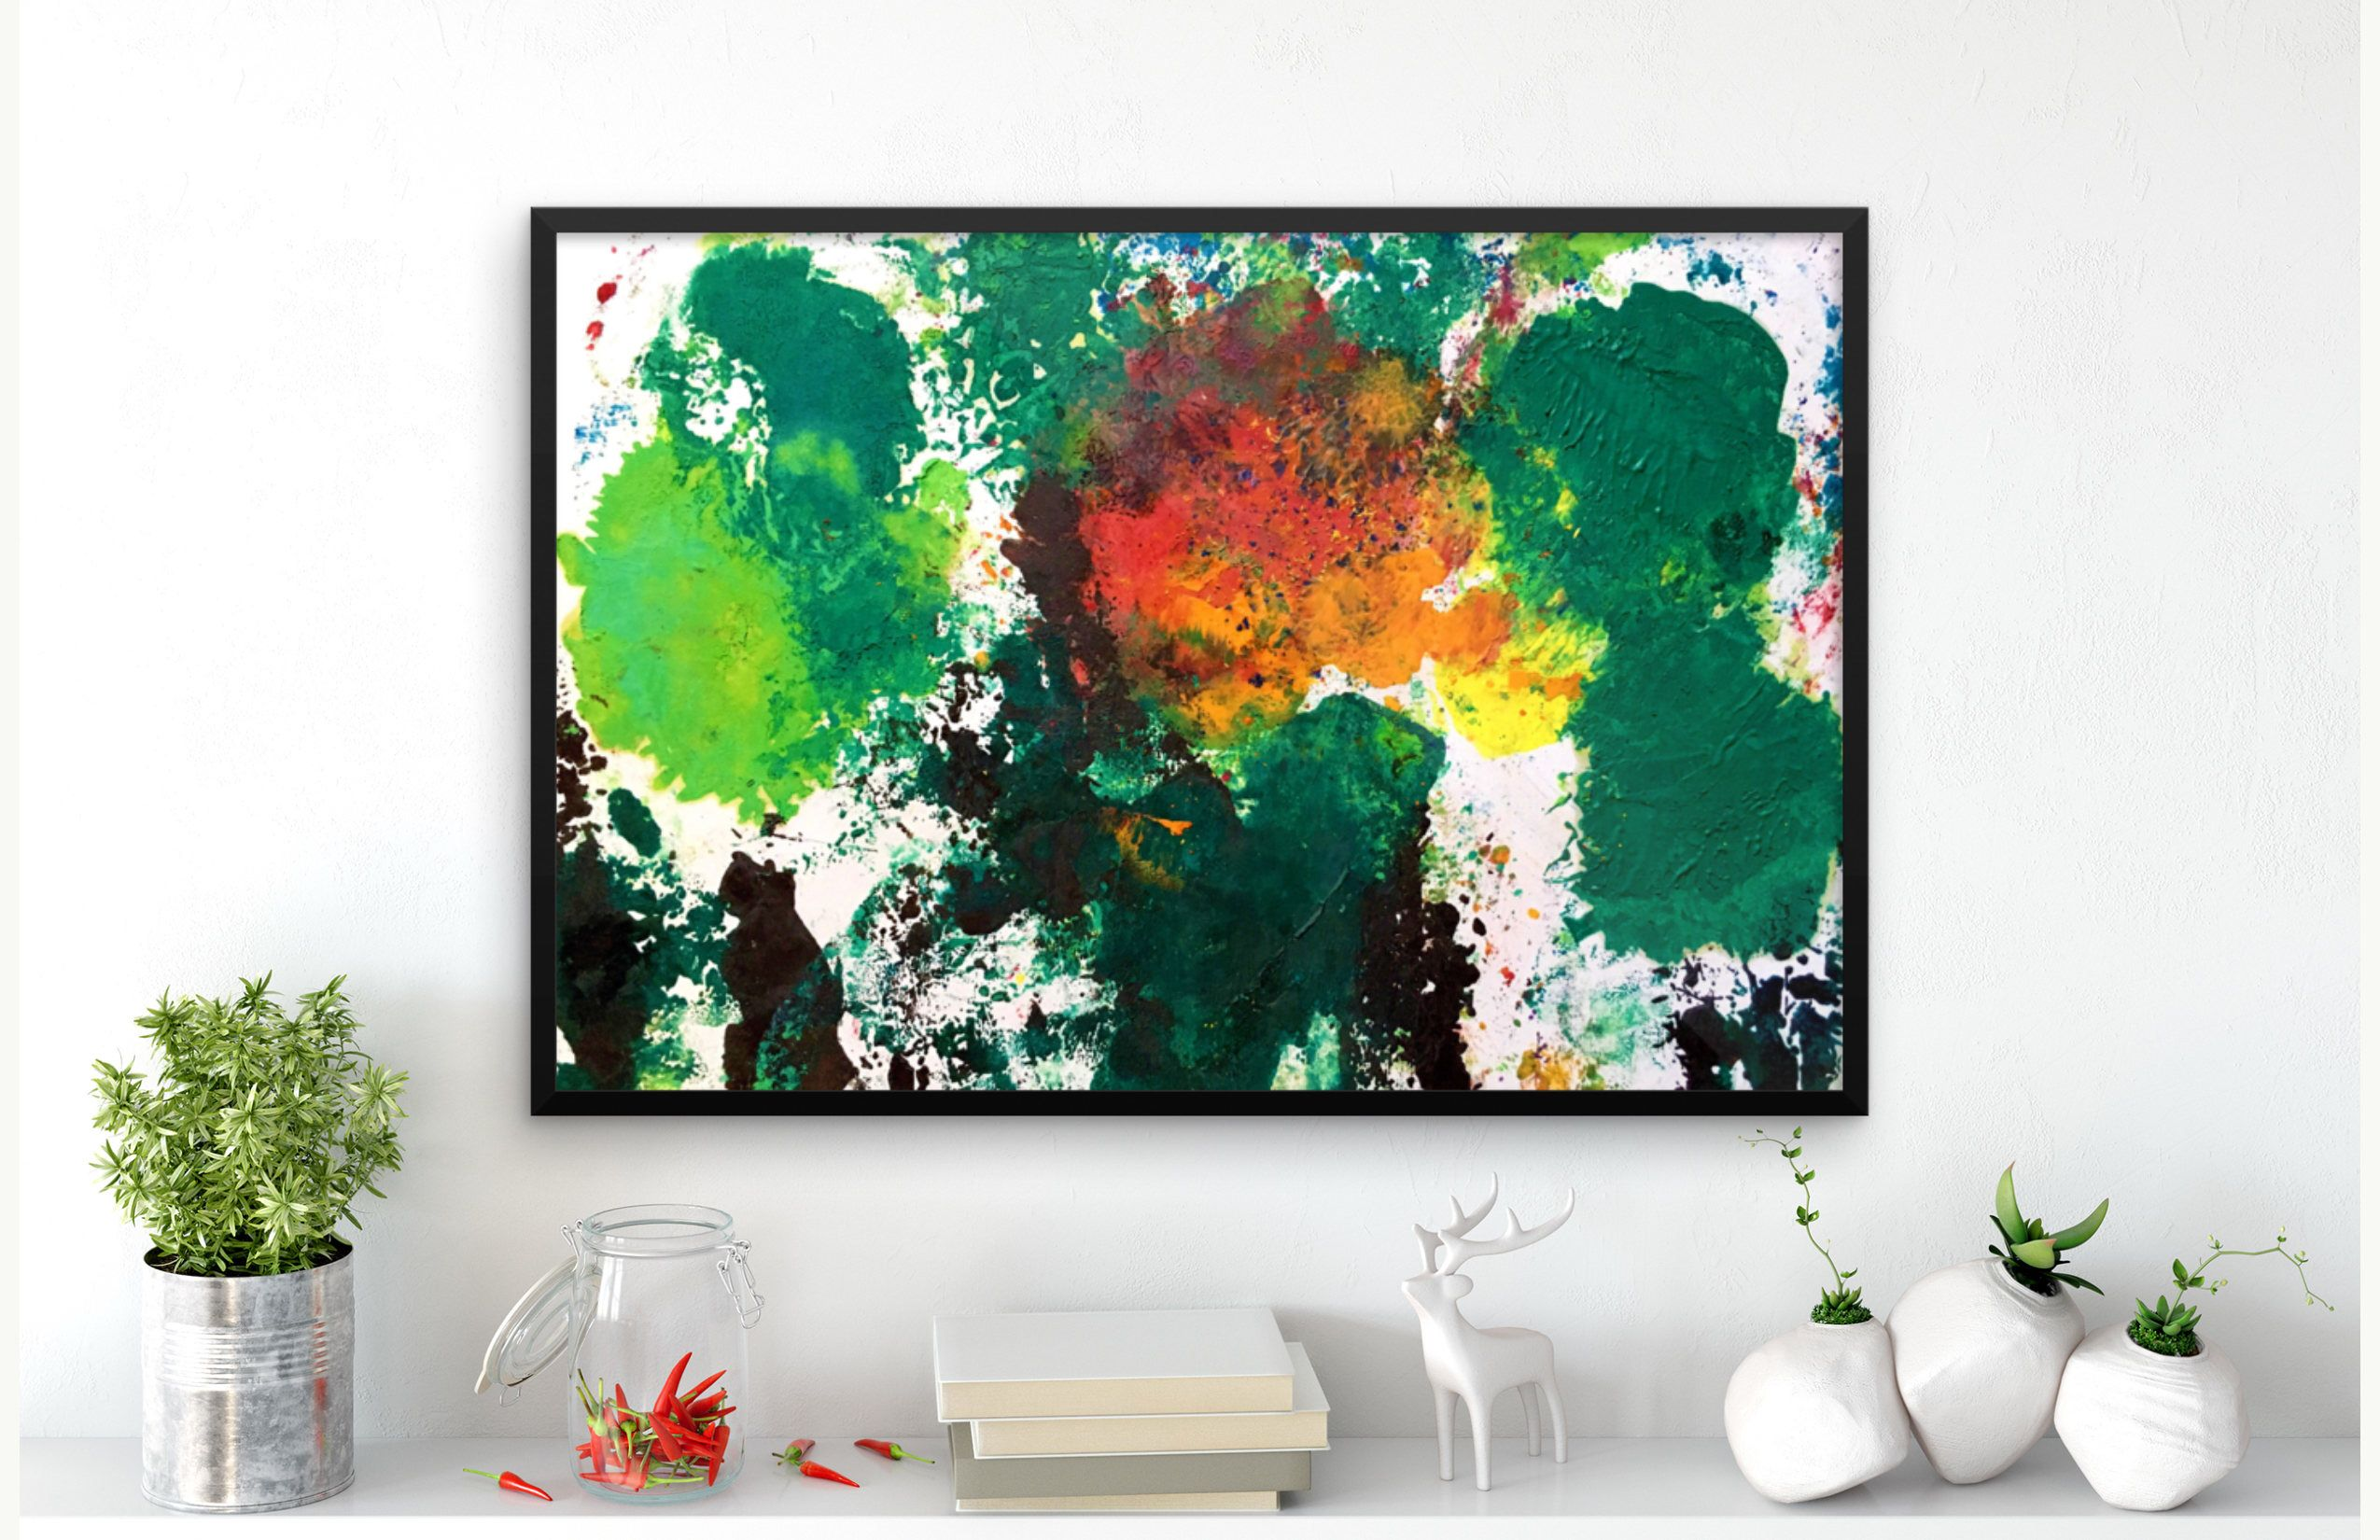 Green Colorful Tree Abstract Painting Living Room Wall Decor, Small ...